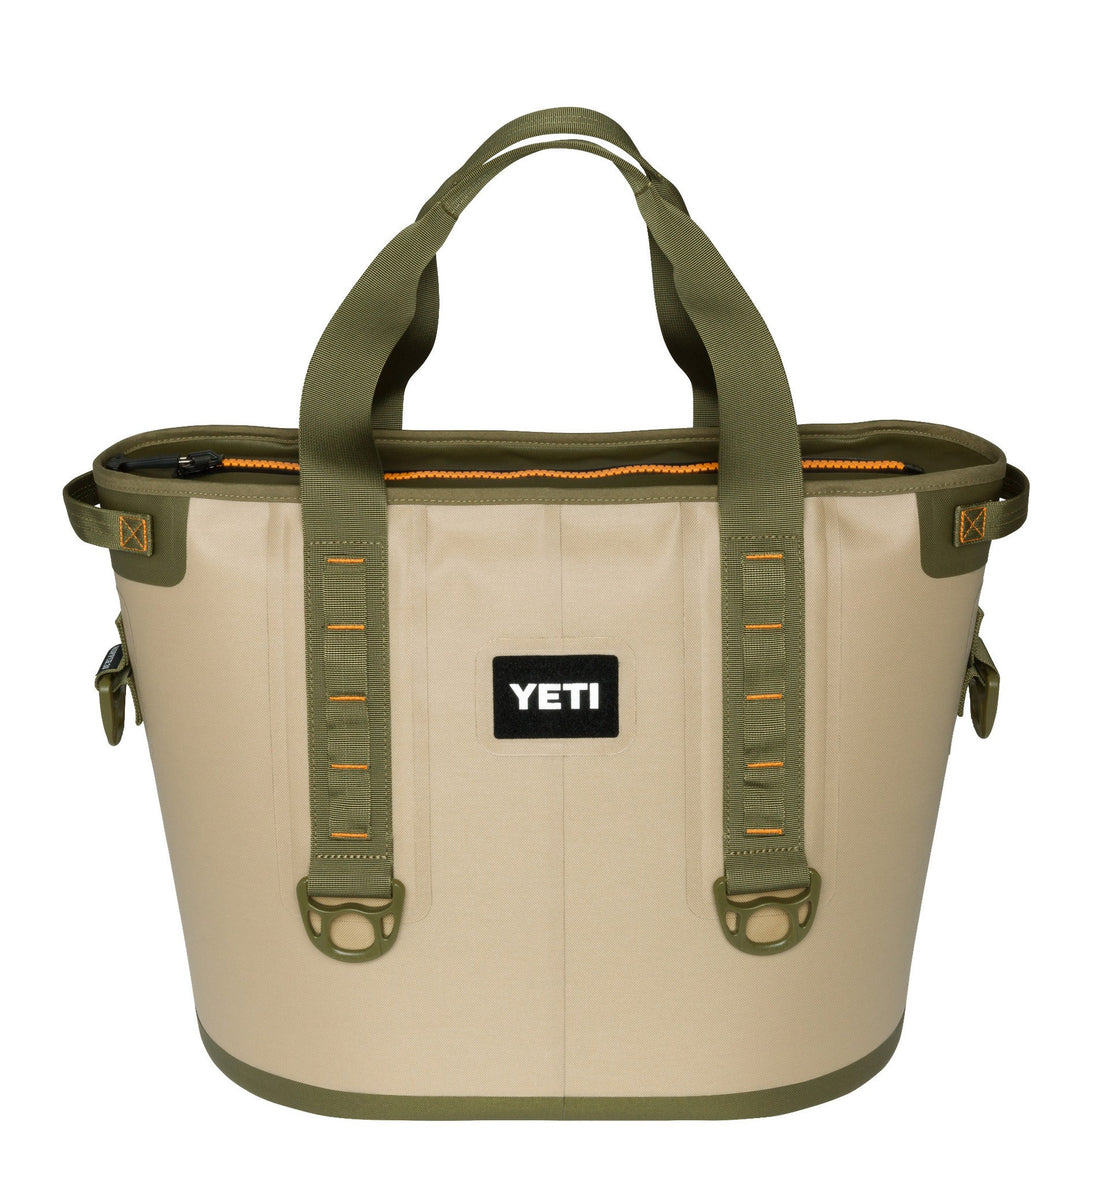 Yeti Hopper 30 - Outdoor Living/Travel - Iron and Resin